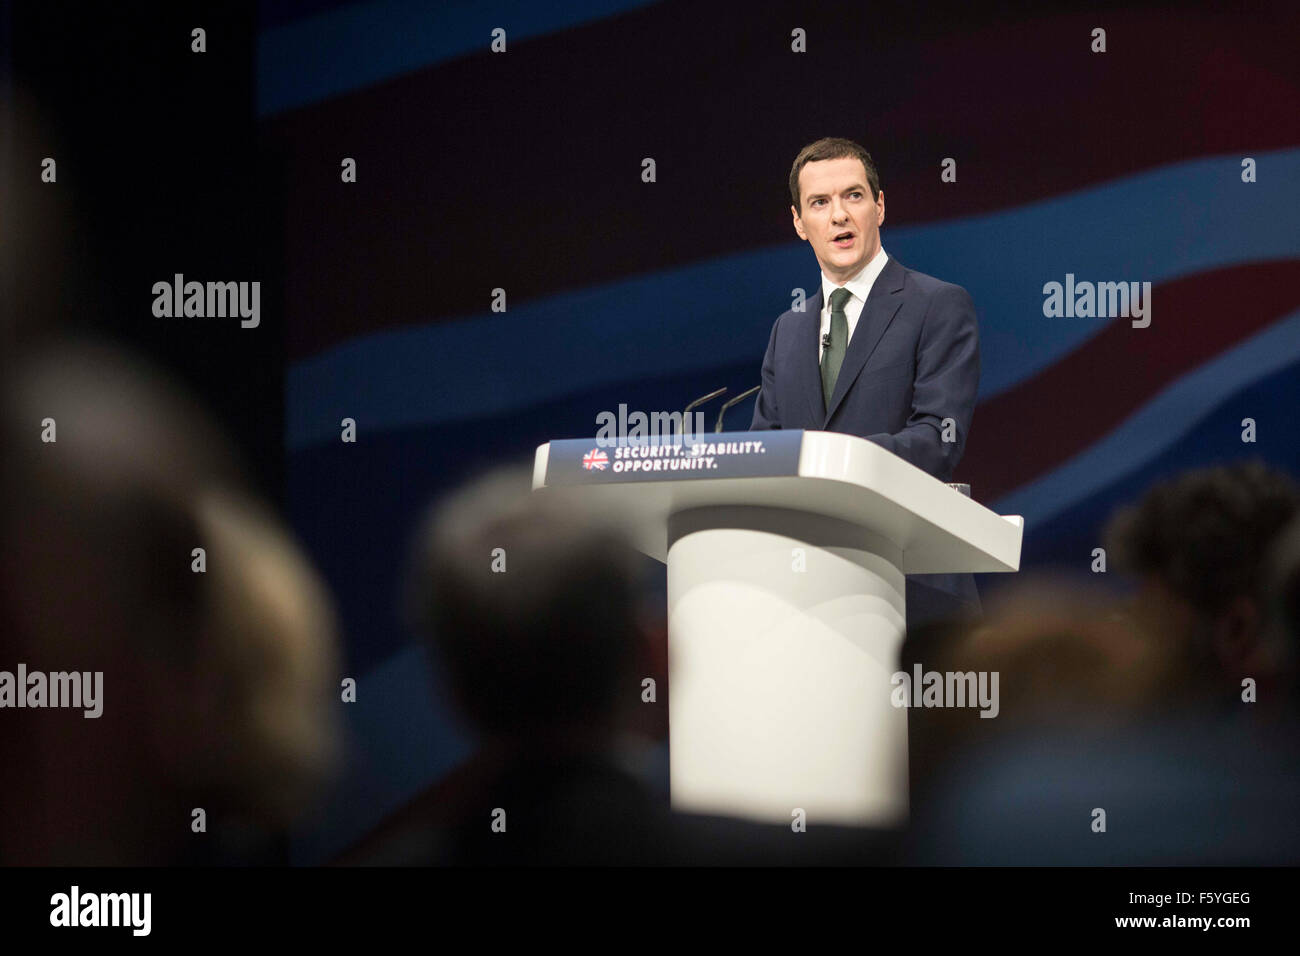 The Conservative Party Conference 2015. George Osborne - Stock Image